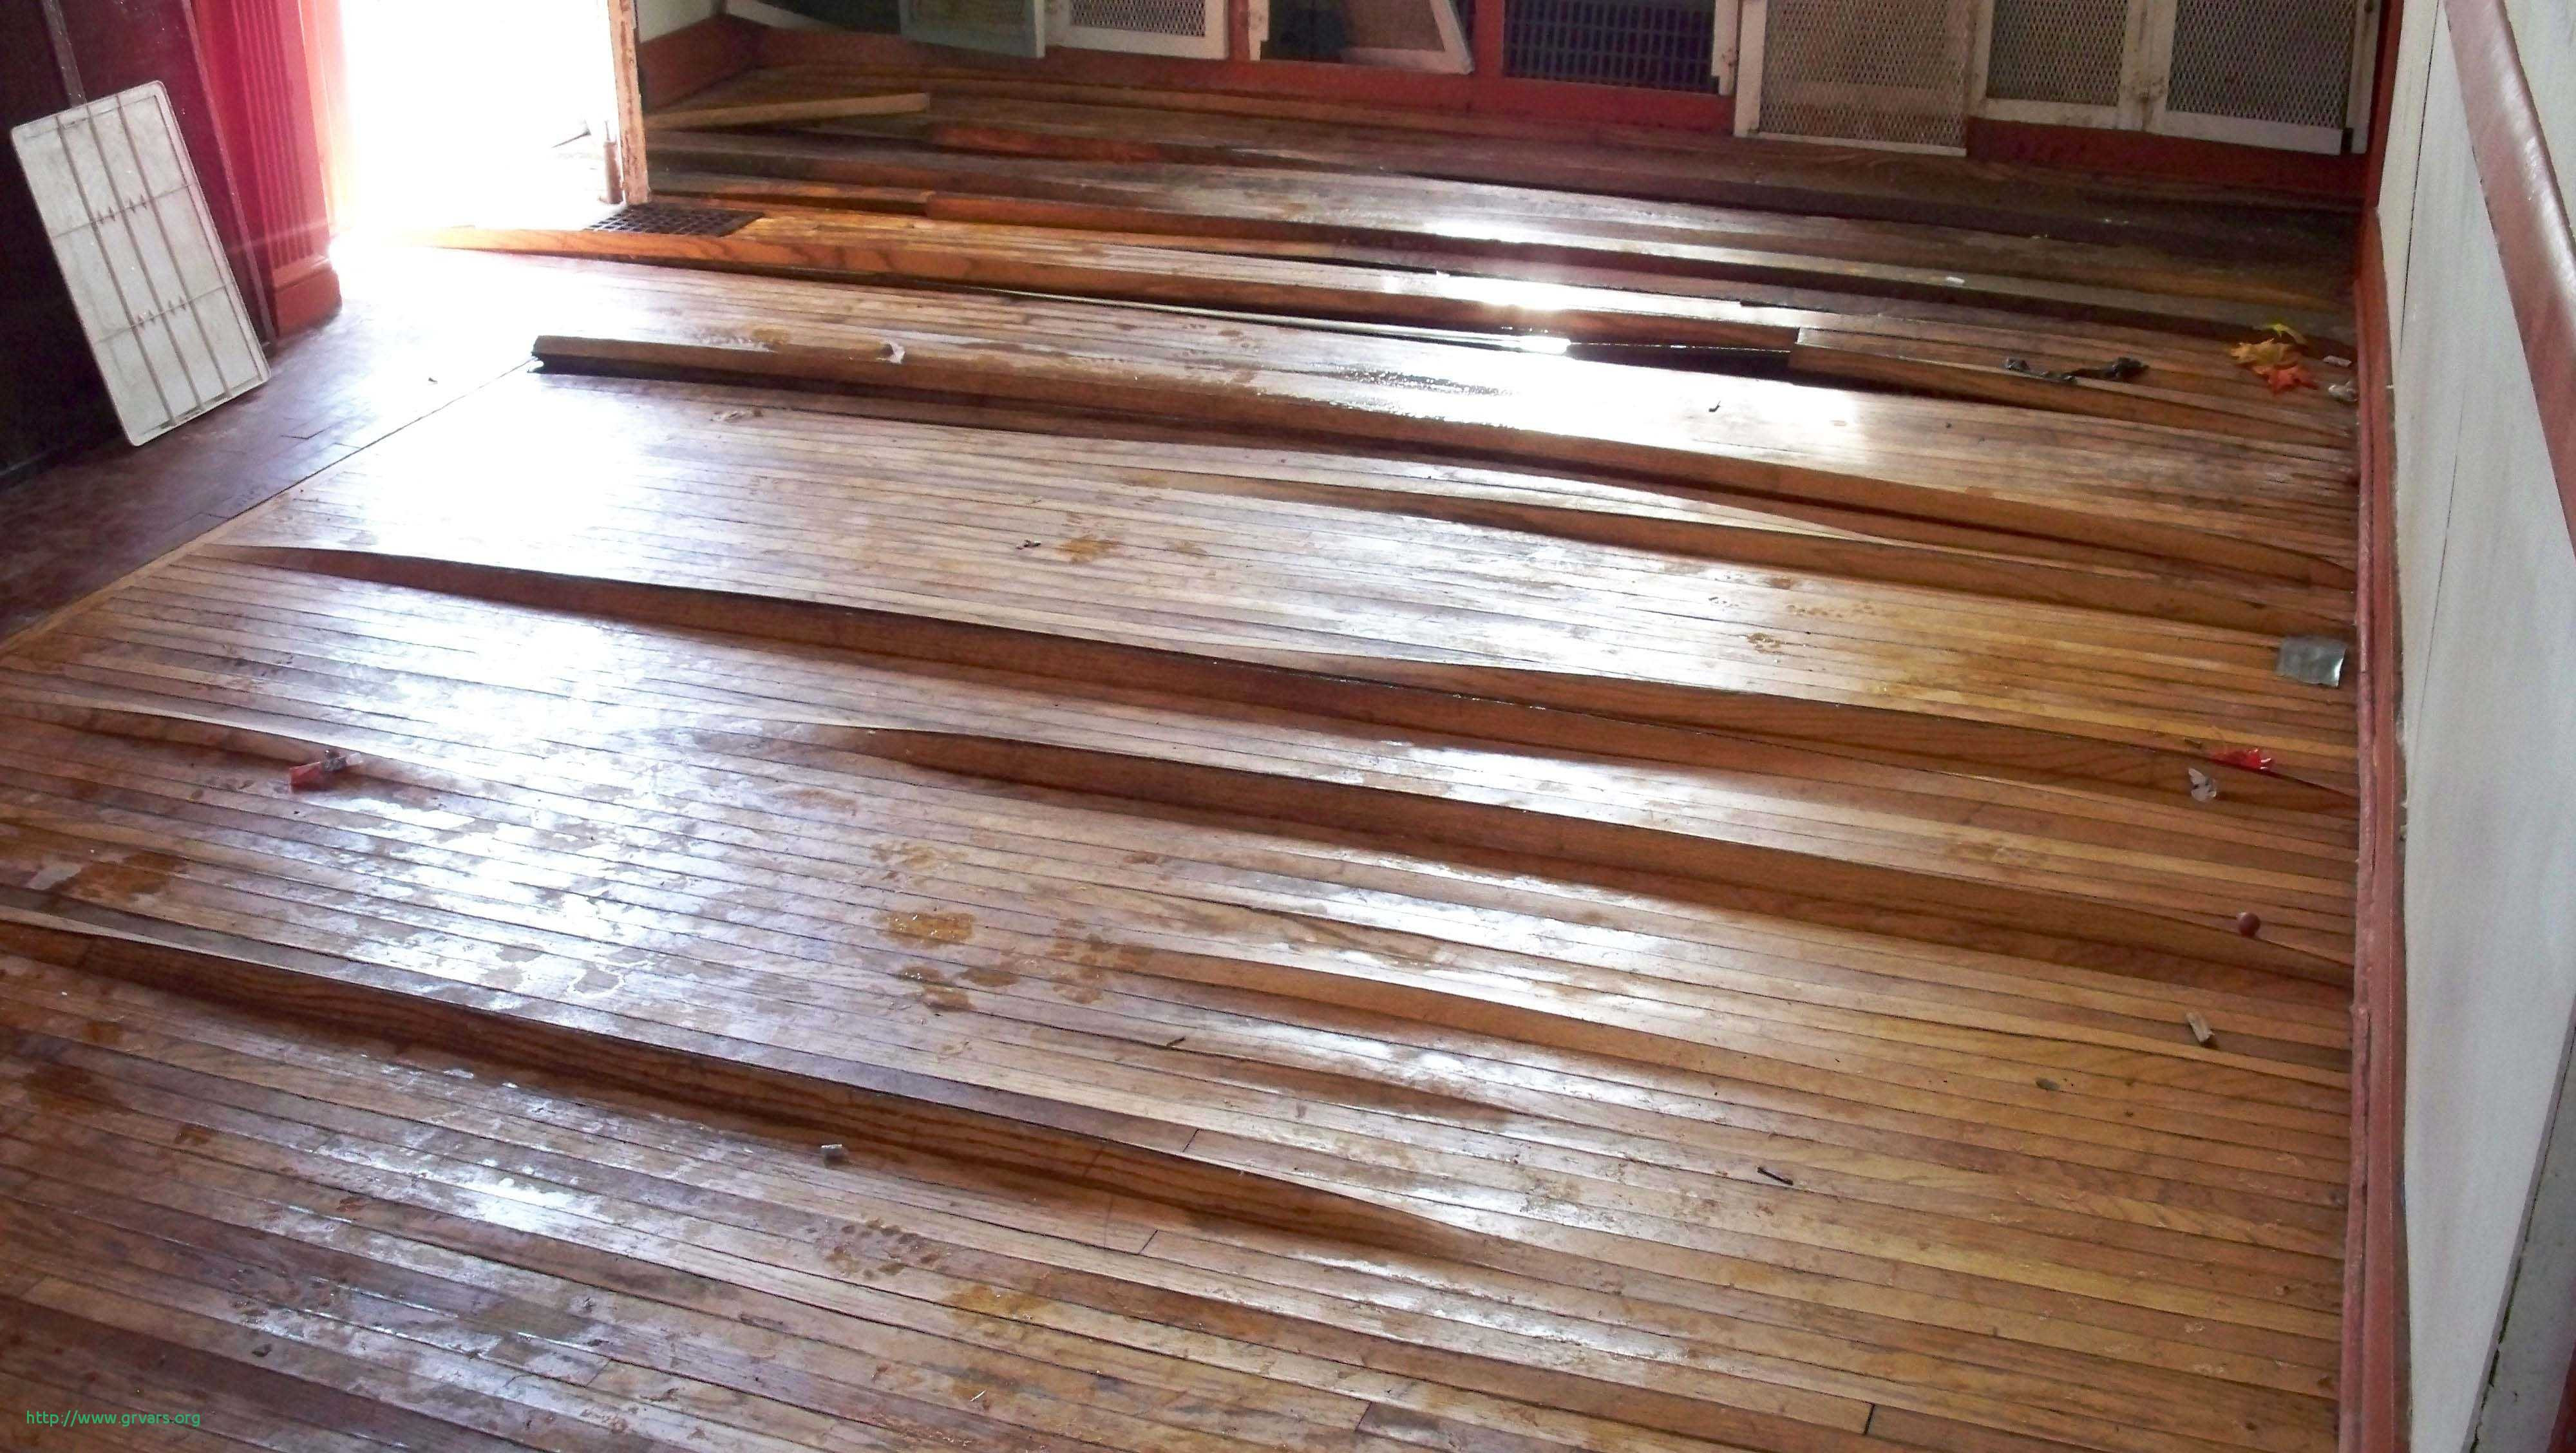 hardwood flooring care and maintenance of 16 inspirant how to fix buckling hardwood floors ideas blog throughout 16 photos of the 16 inspirant how to fix buckling hardwood floors